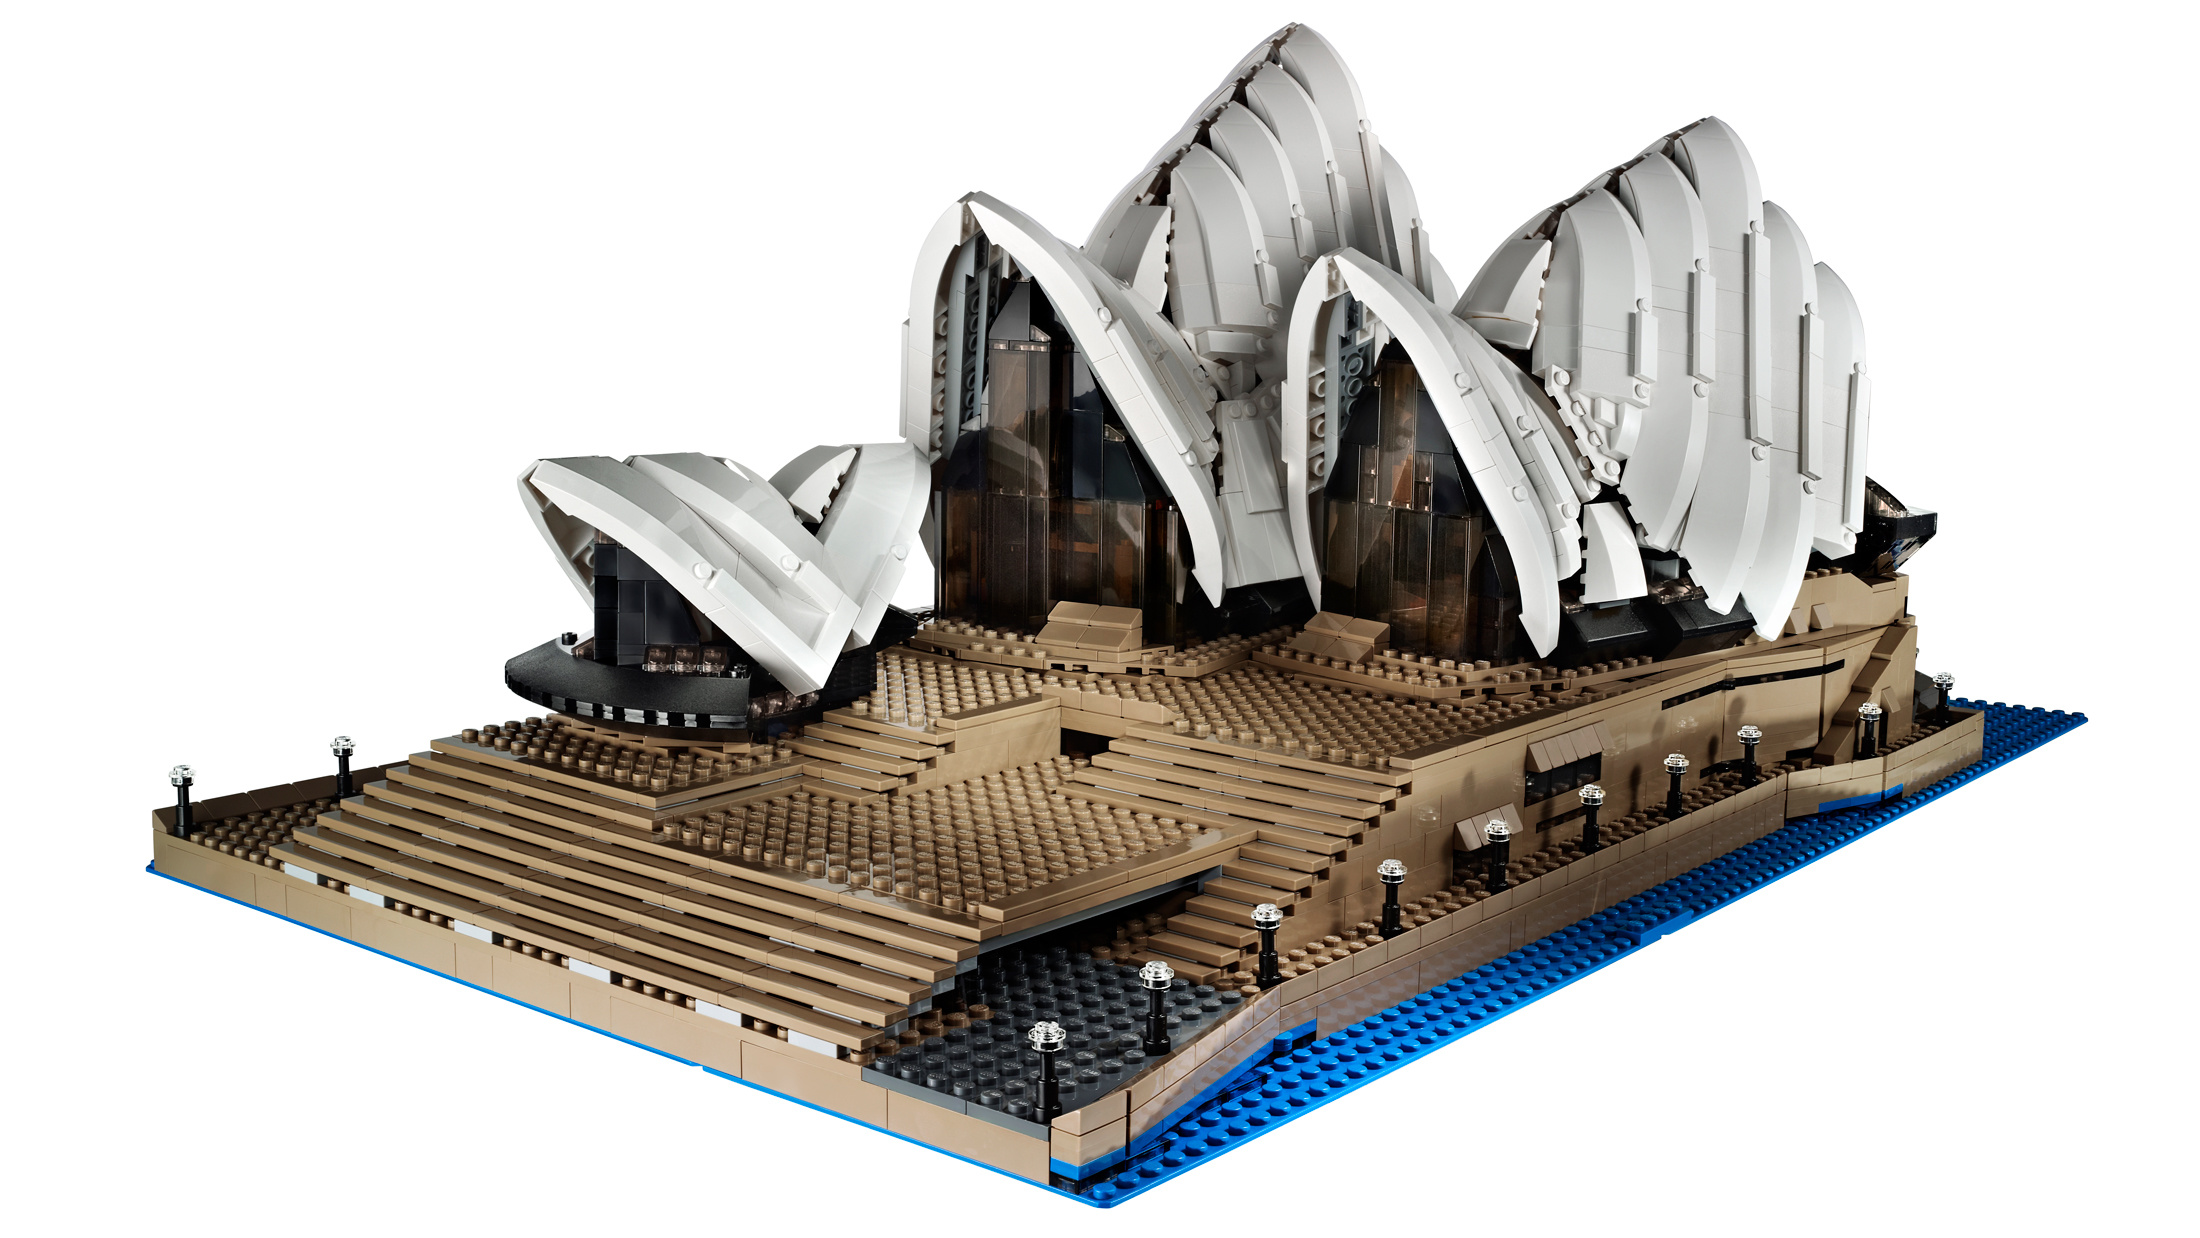 11 Lego Sets We Want as Adults